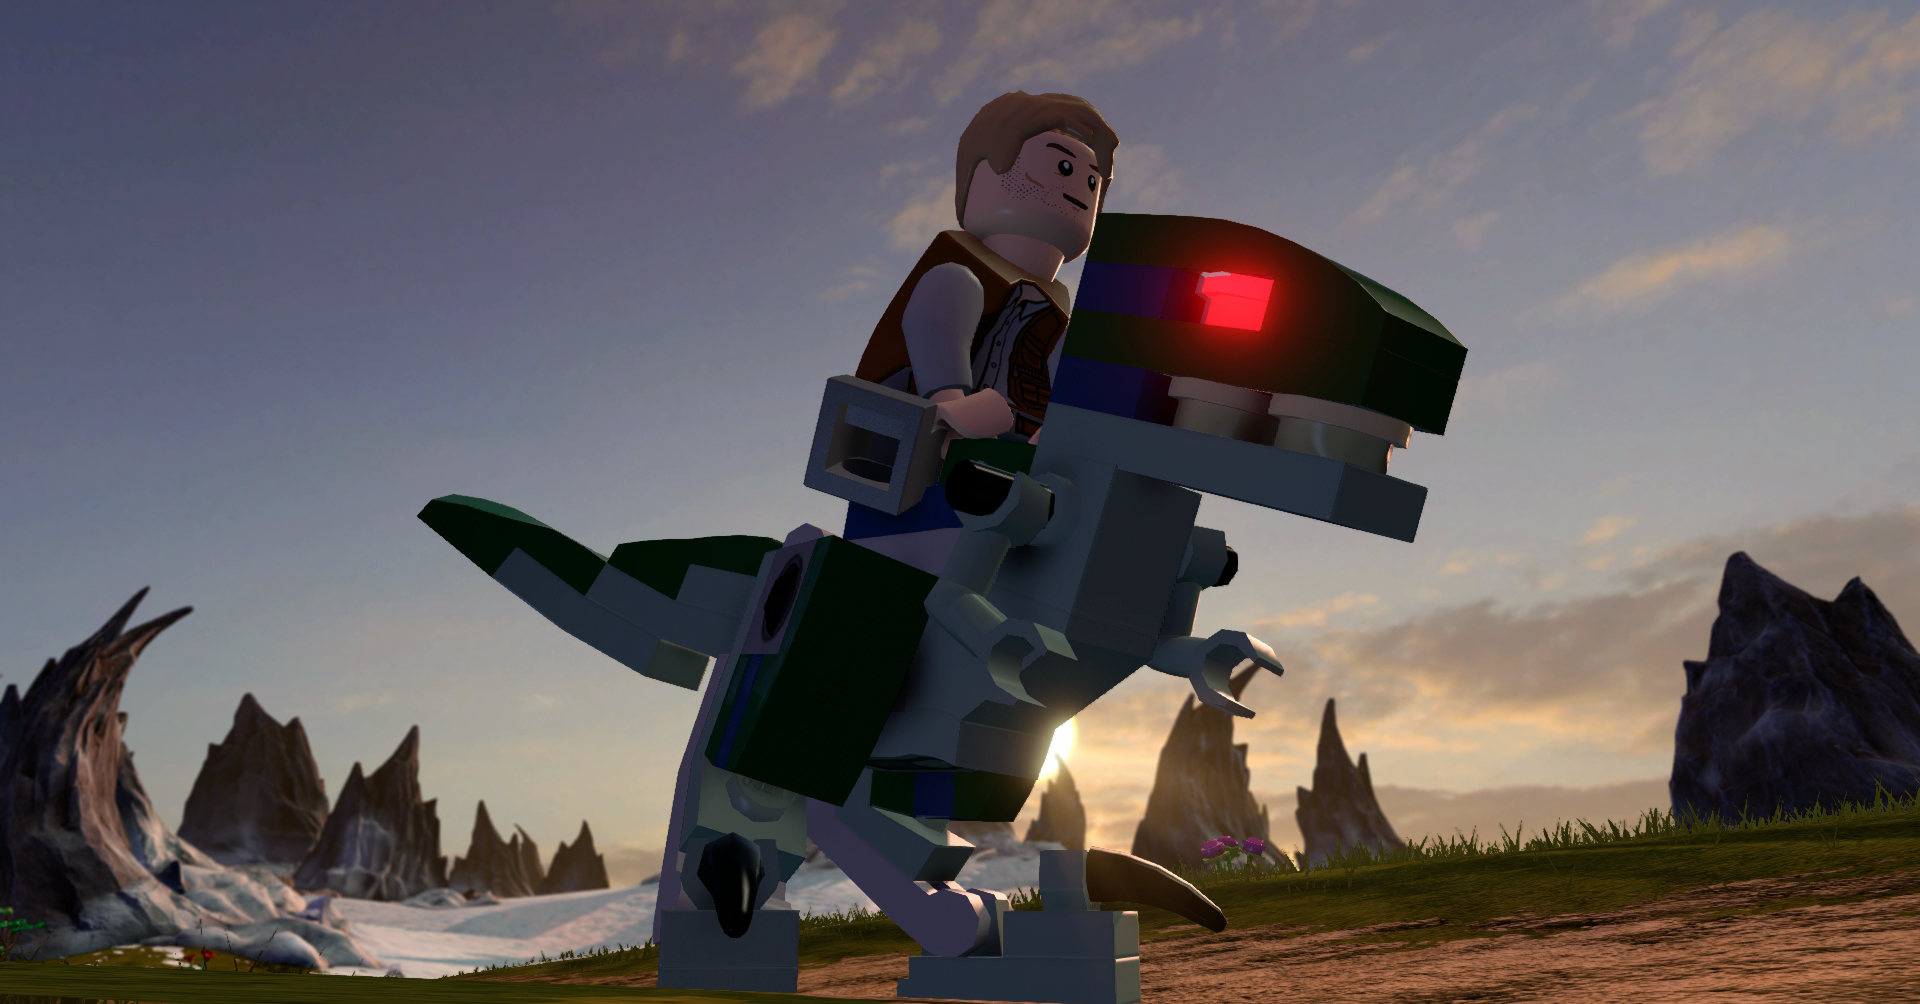 Jurassic World Raptor Riding in LEGO Dimensions